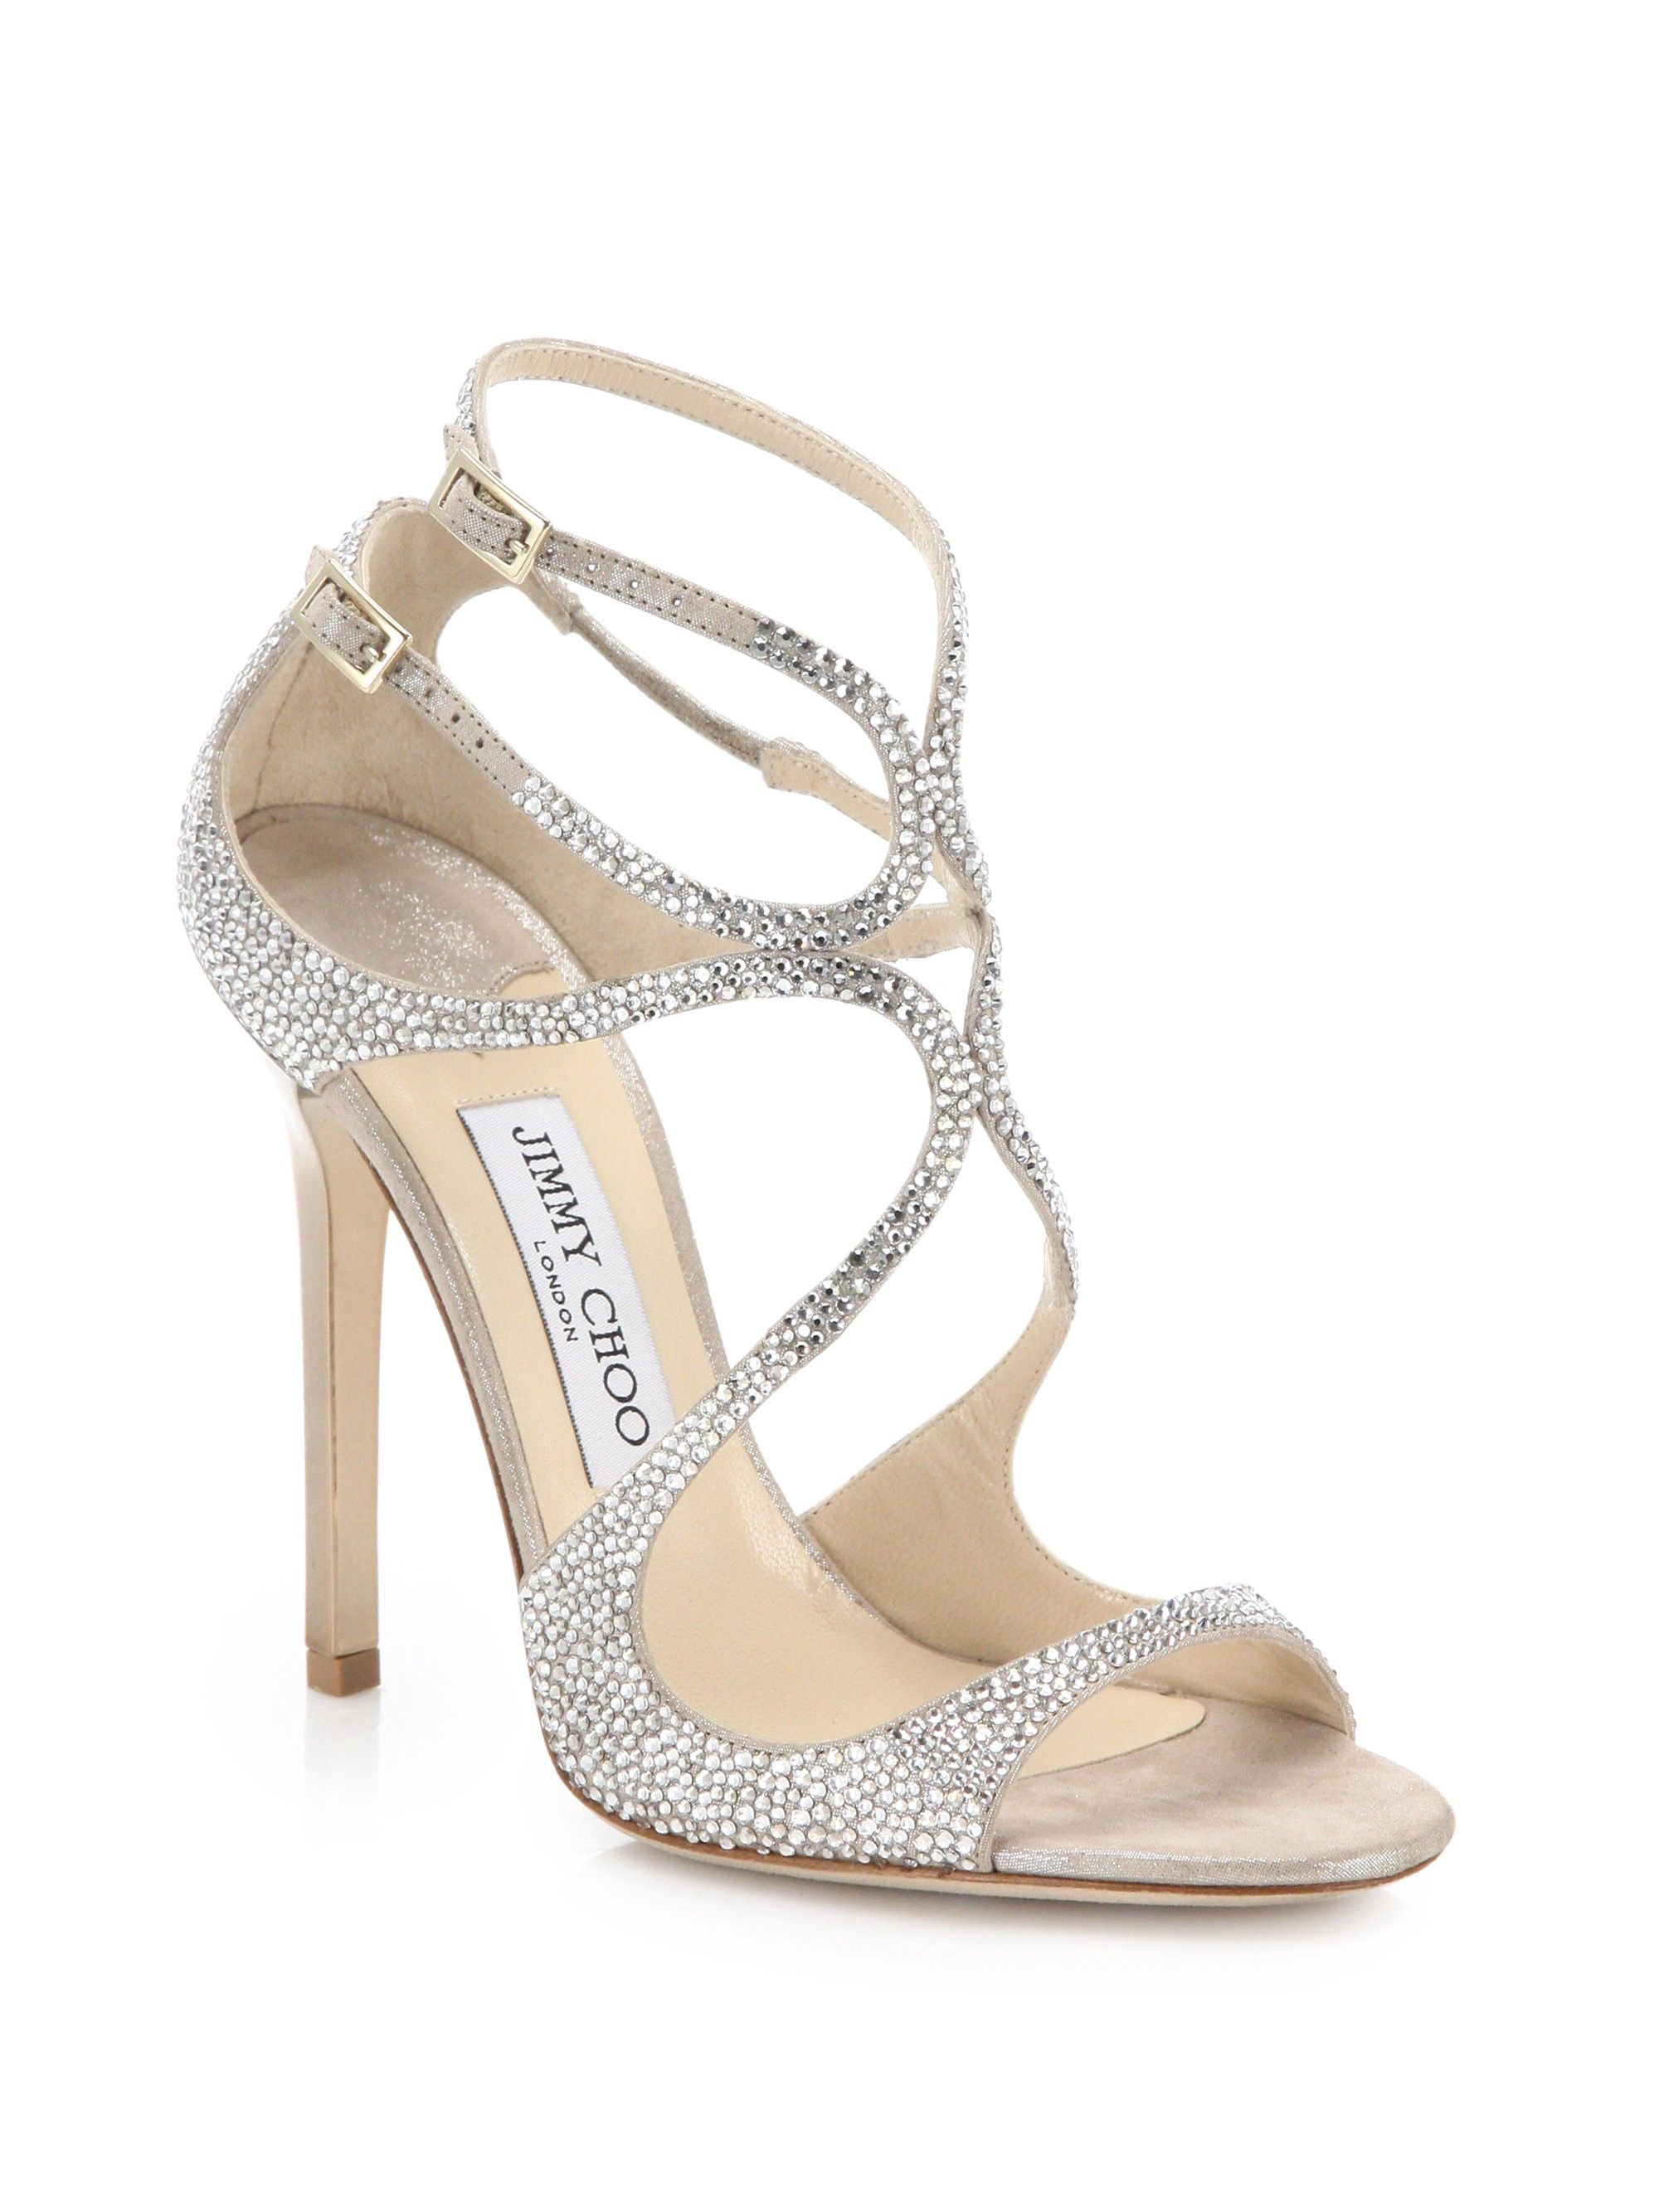 7049337a09ae JIMMY CHOO Lang Memento Ankle-Wrap Suede Sandals.  jimmychoo  shoes ...